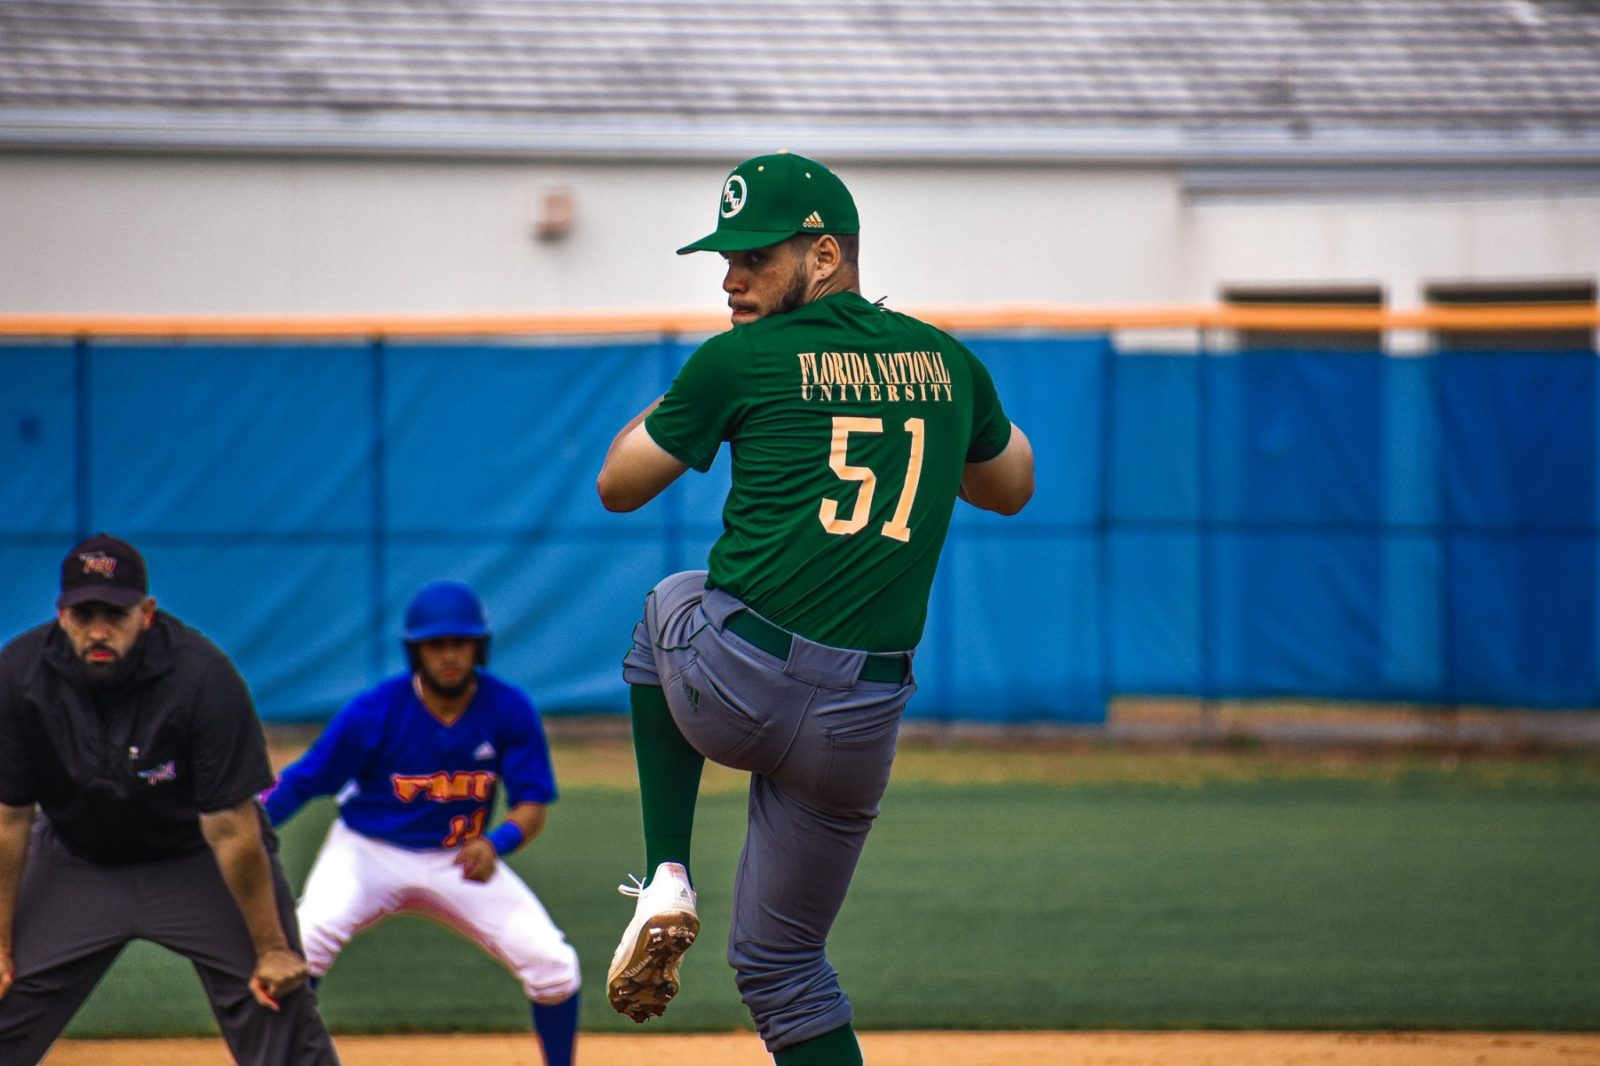 FNU Baseball player pitching during the game